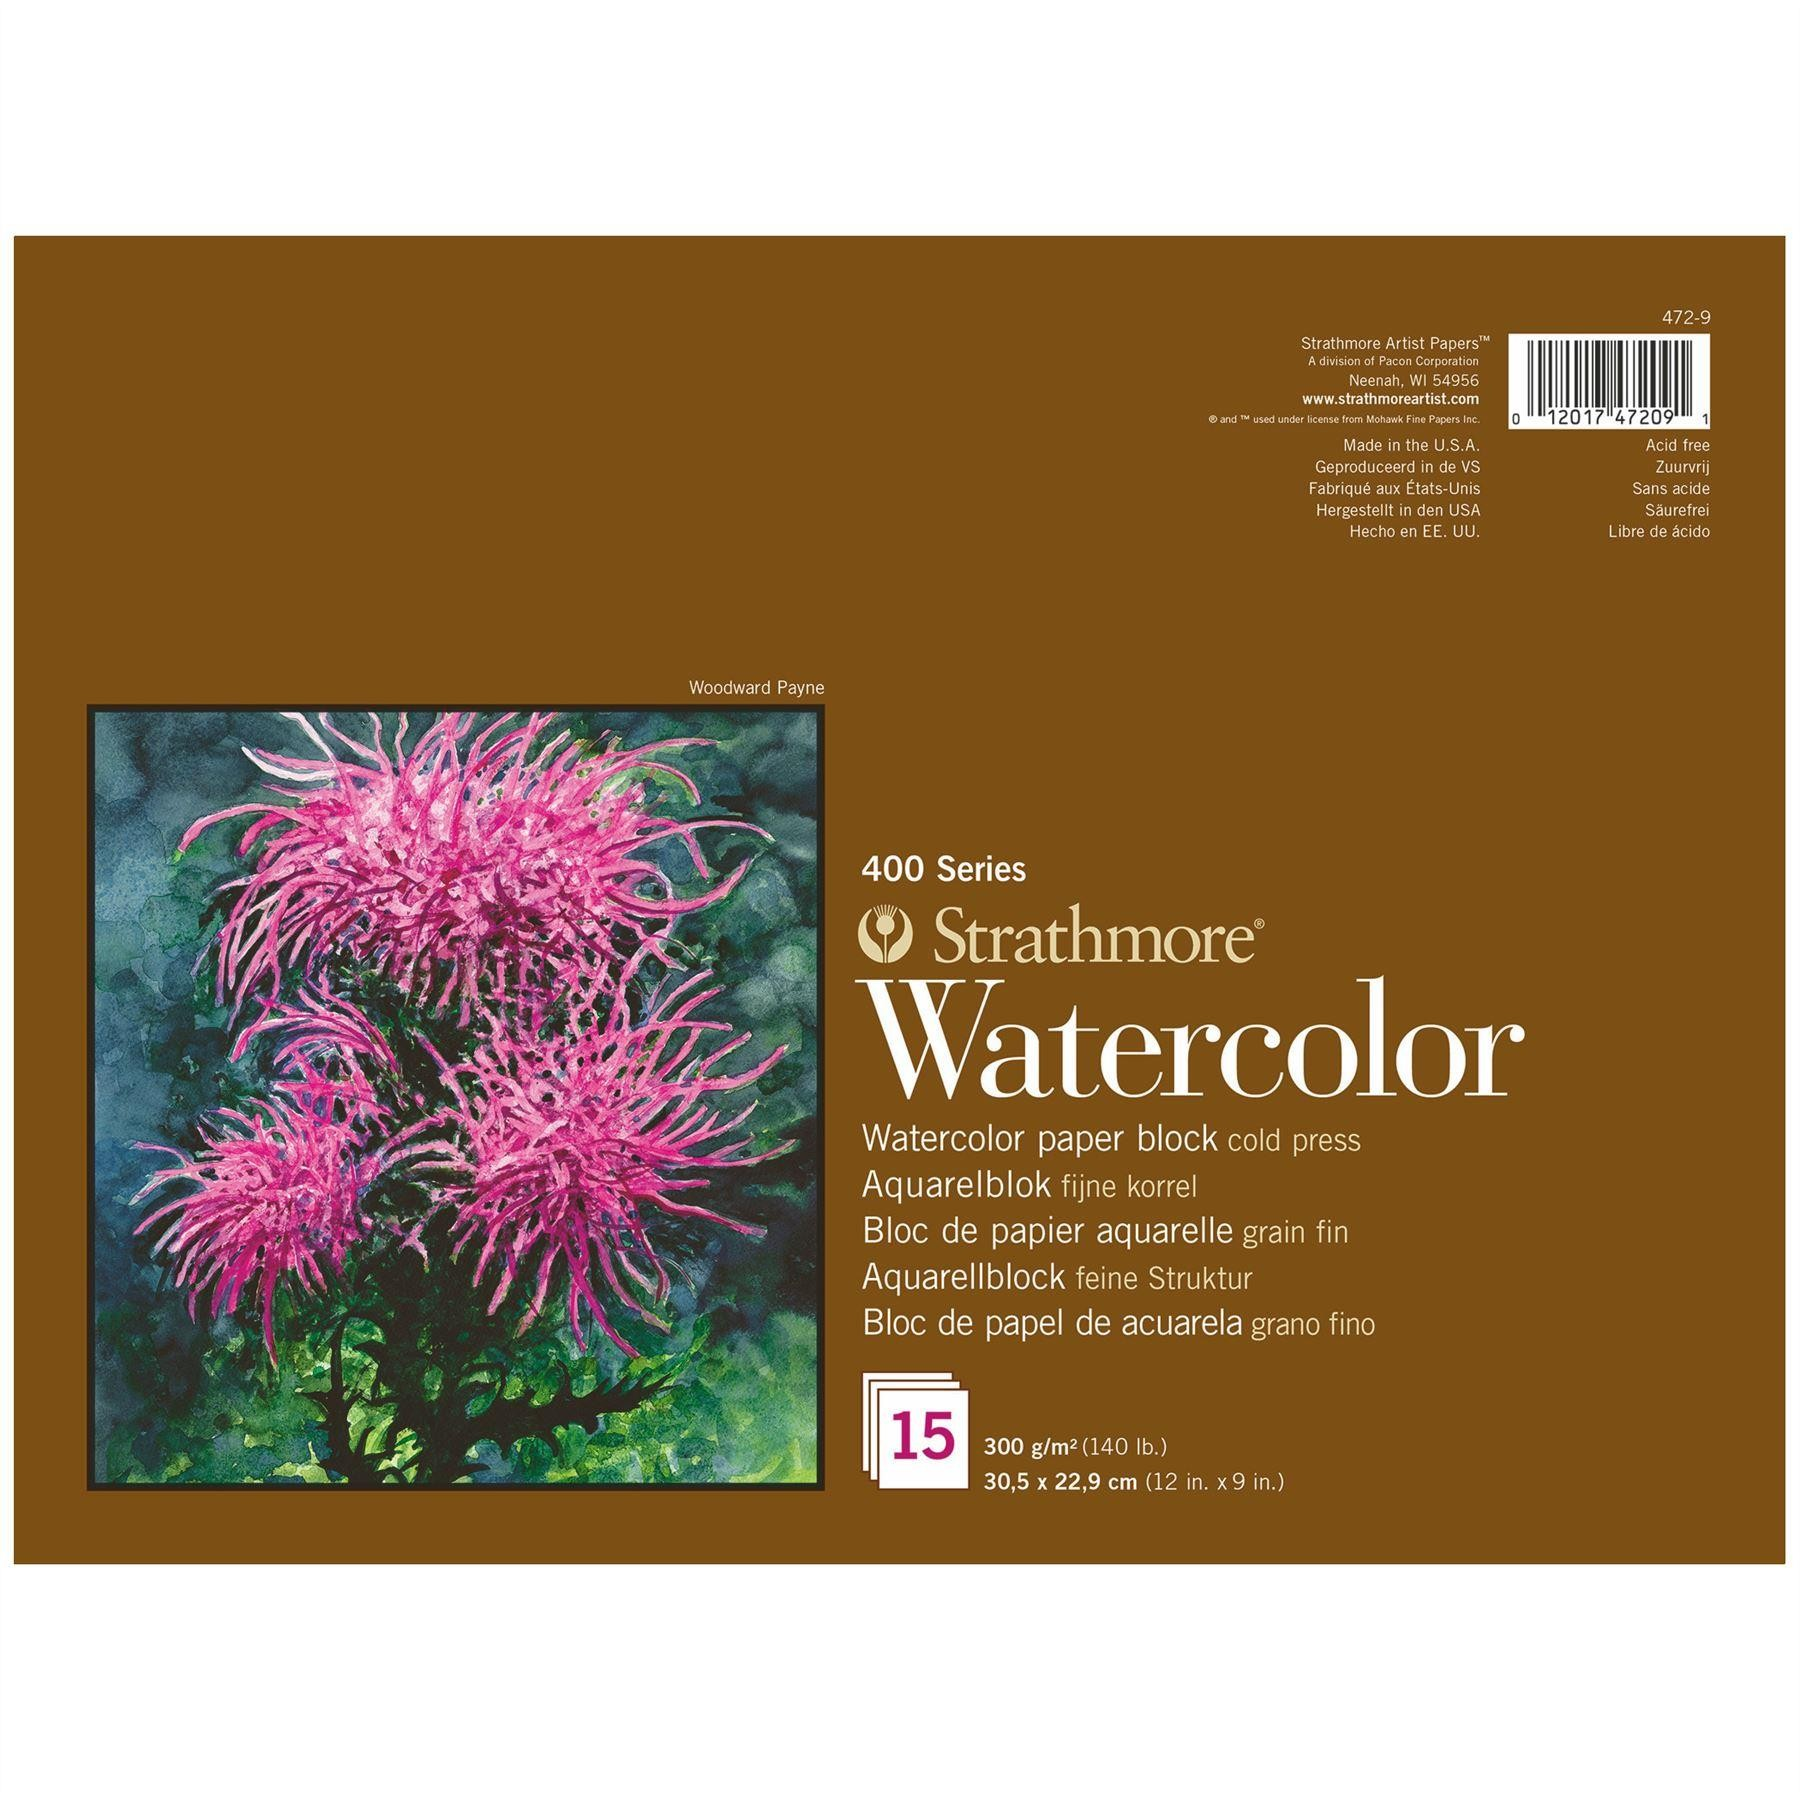 Strathmore professional artist watercolour paper block 15 sheets